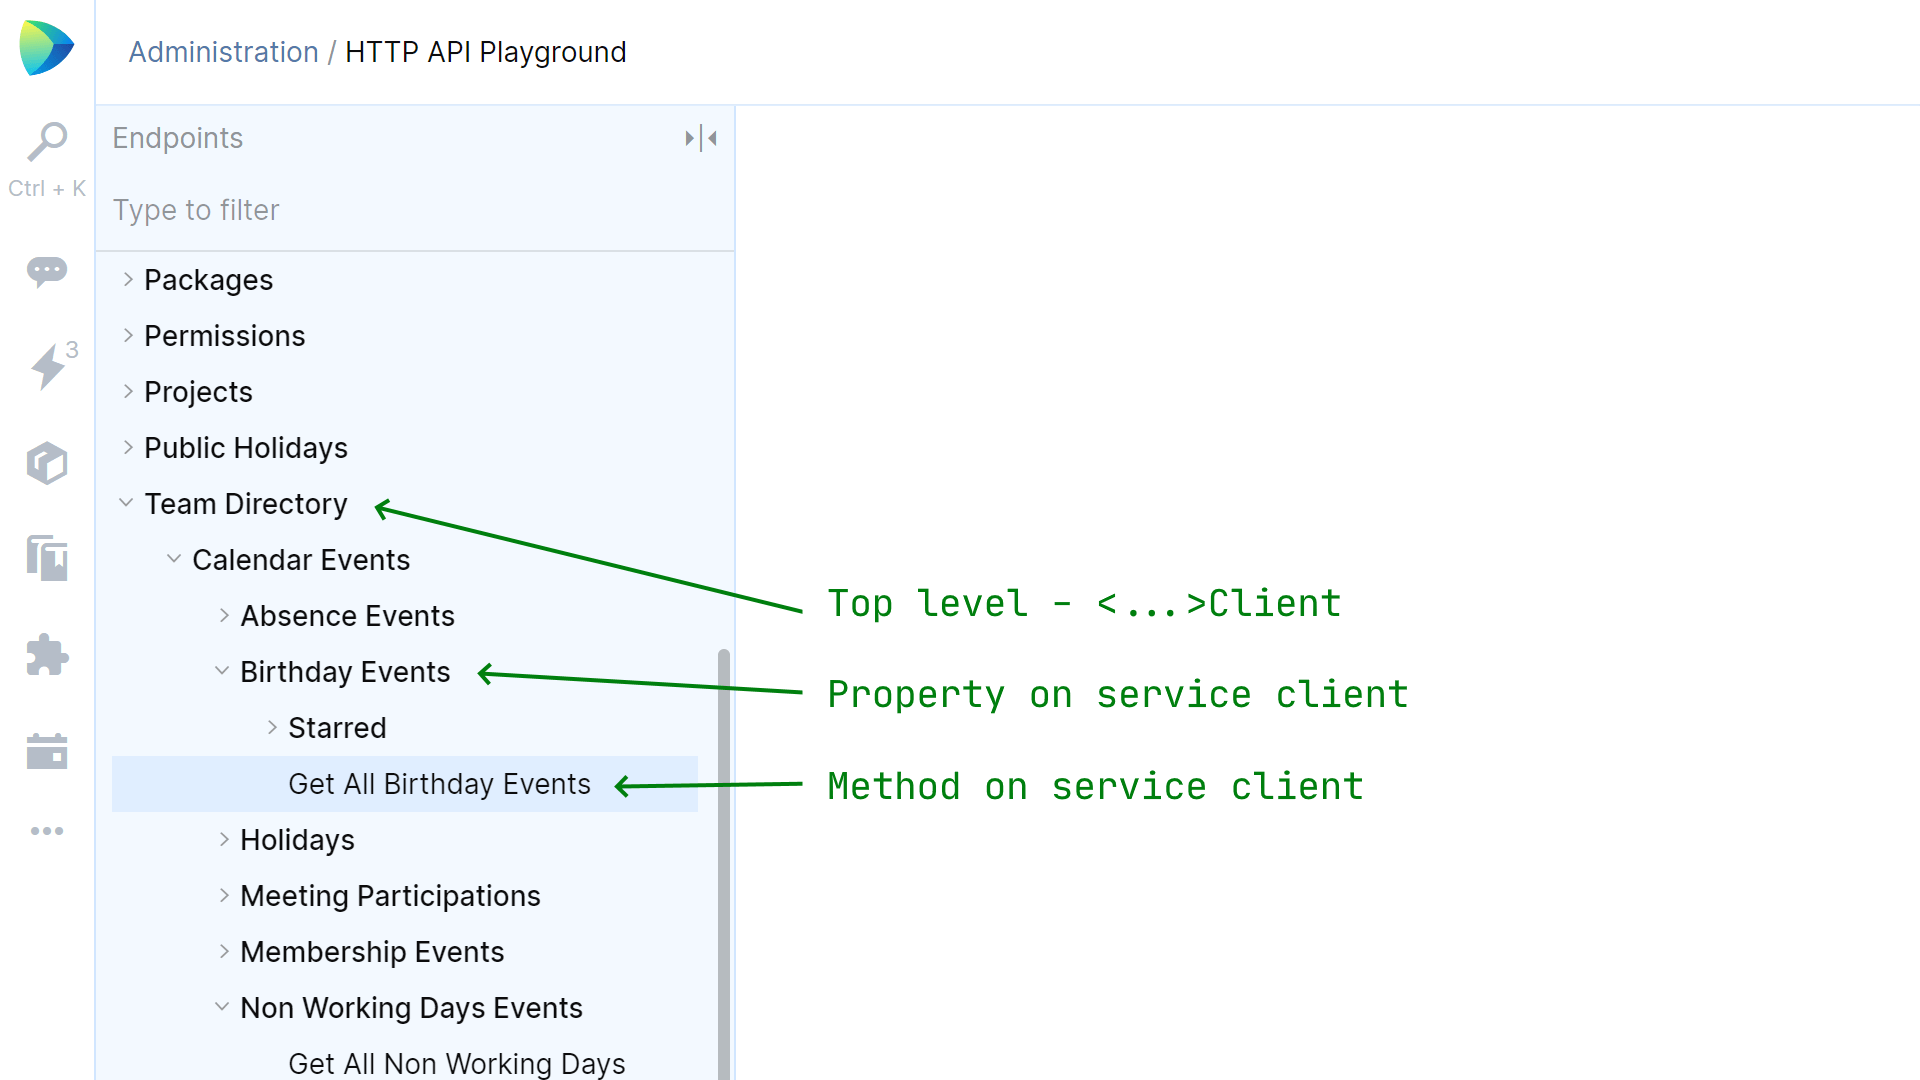 HTTP API Playground and how it maps to service clients